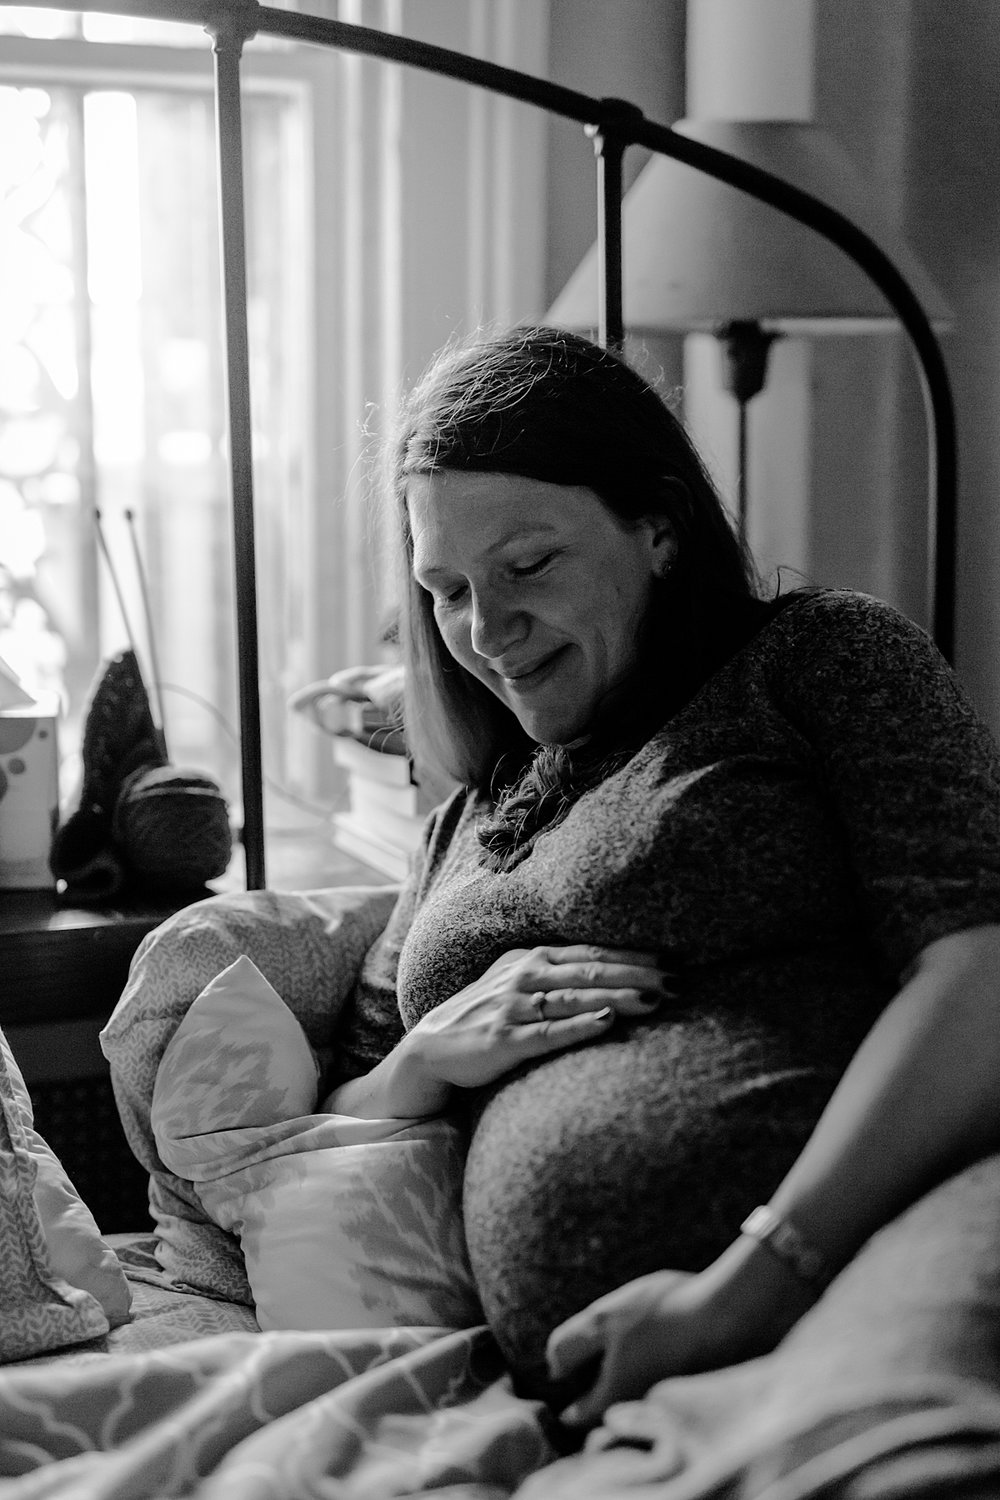 black and white maternity portrait of expecting mother sitting in her bedroom and holding her big pregnant belly. photo by nyc family and newborn photographer krystil mcdowall